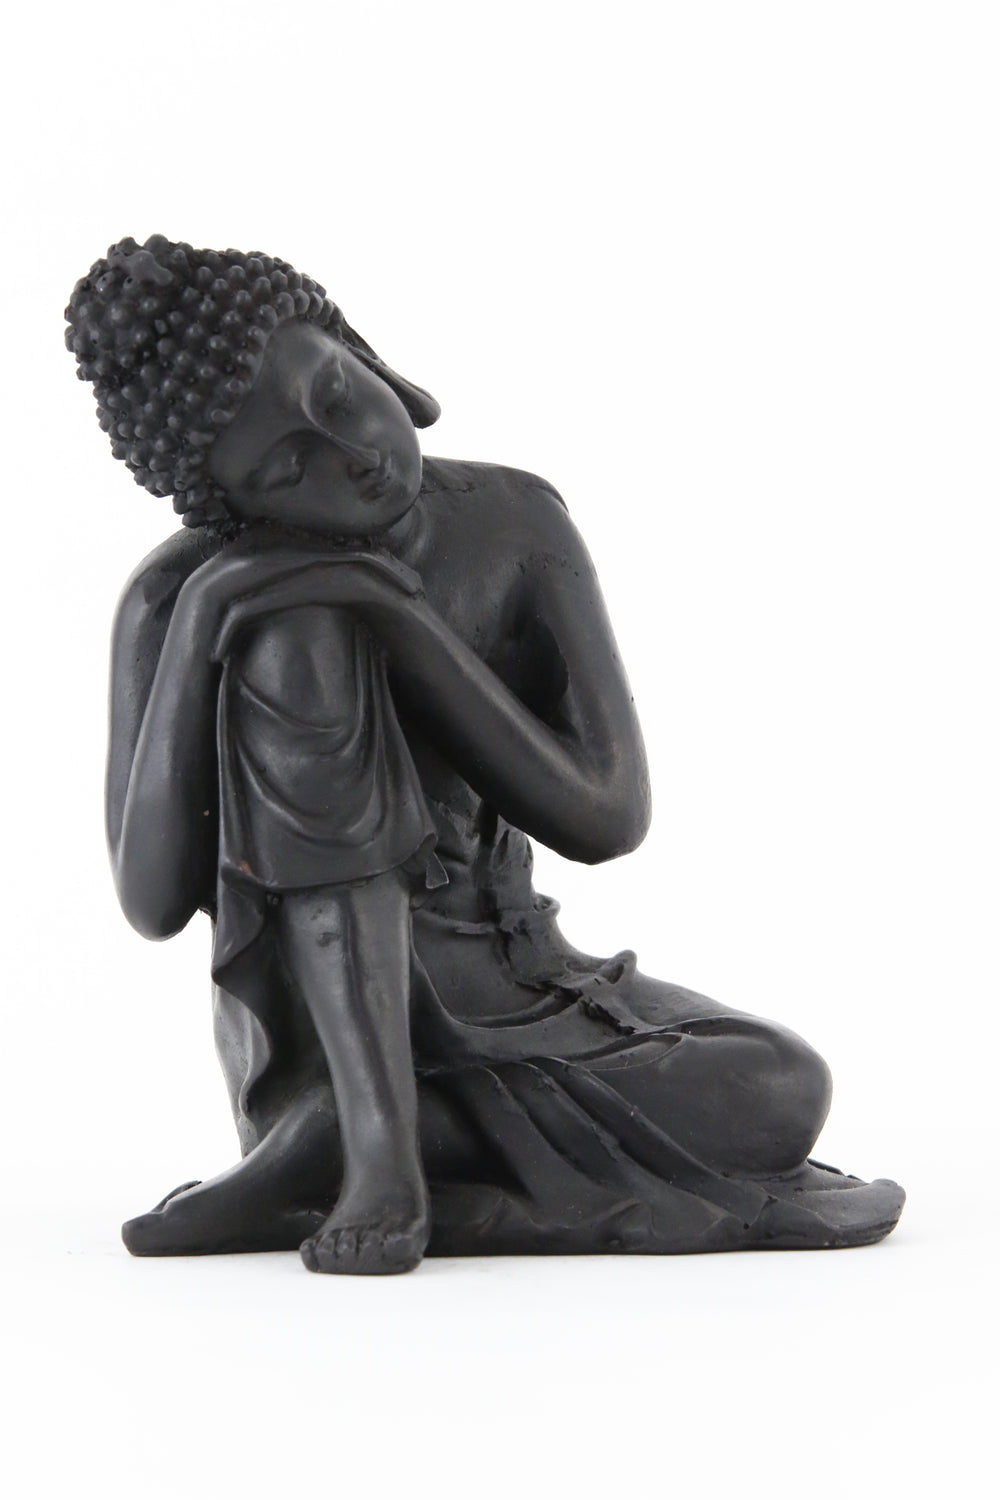 RESTING BUDDHA STATUE DARK LARGE SIDE VIEW